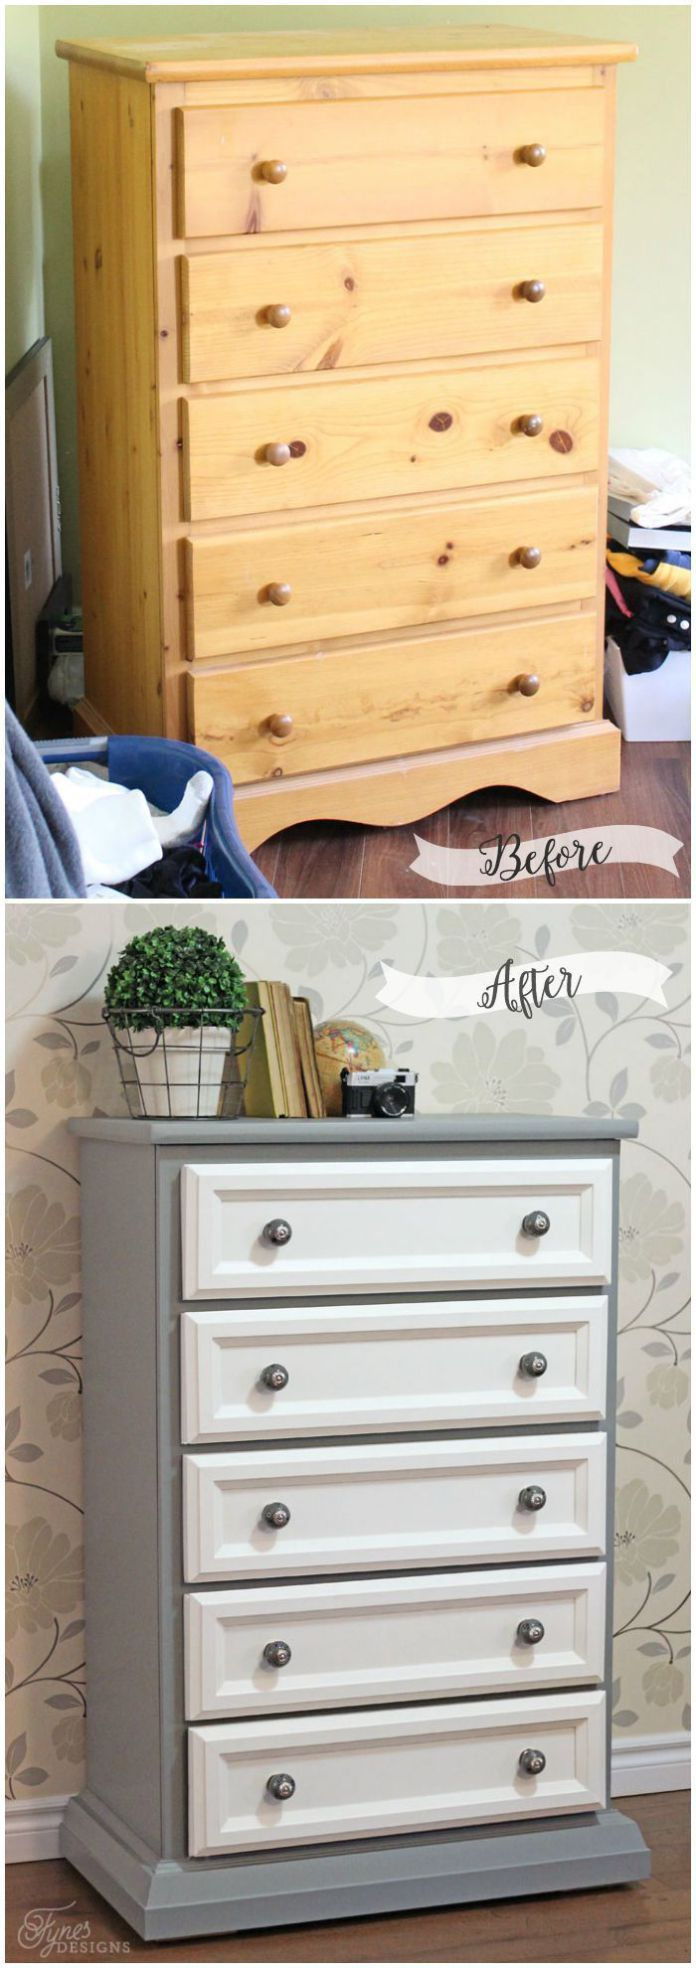 Best Diy Crafts Ideas For Your Home : Tall Dresser Makeover Tutorial with Trim and Paint